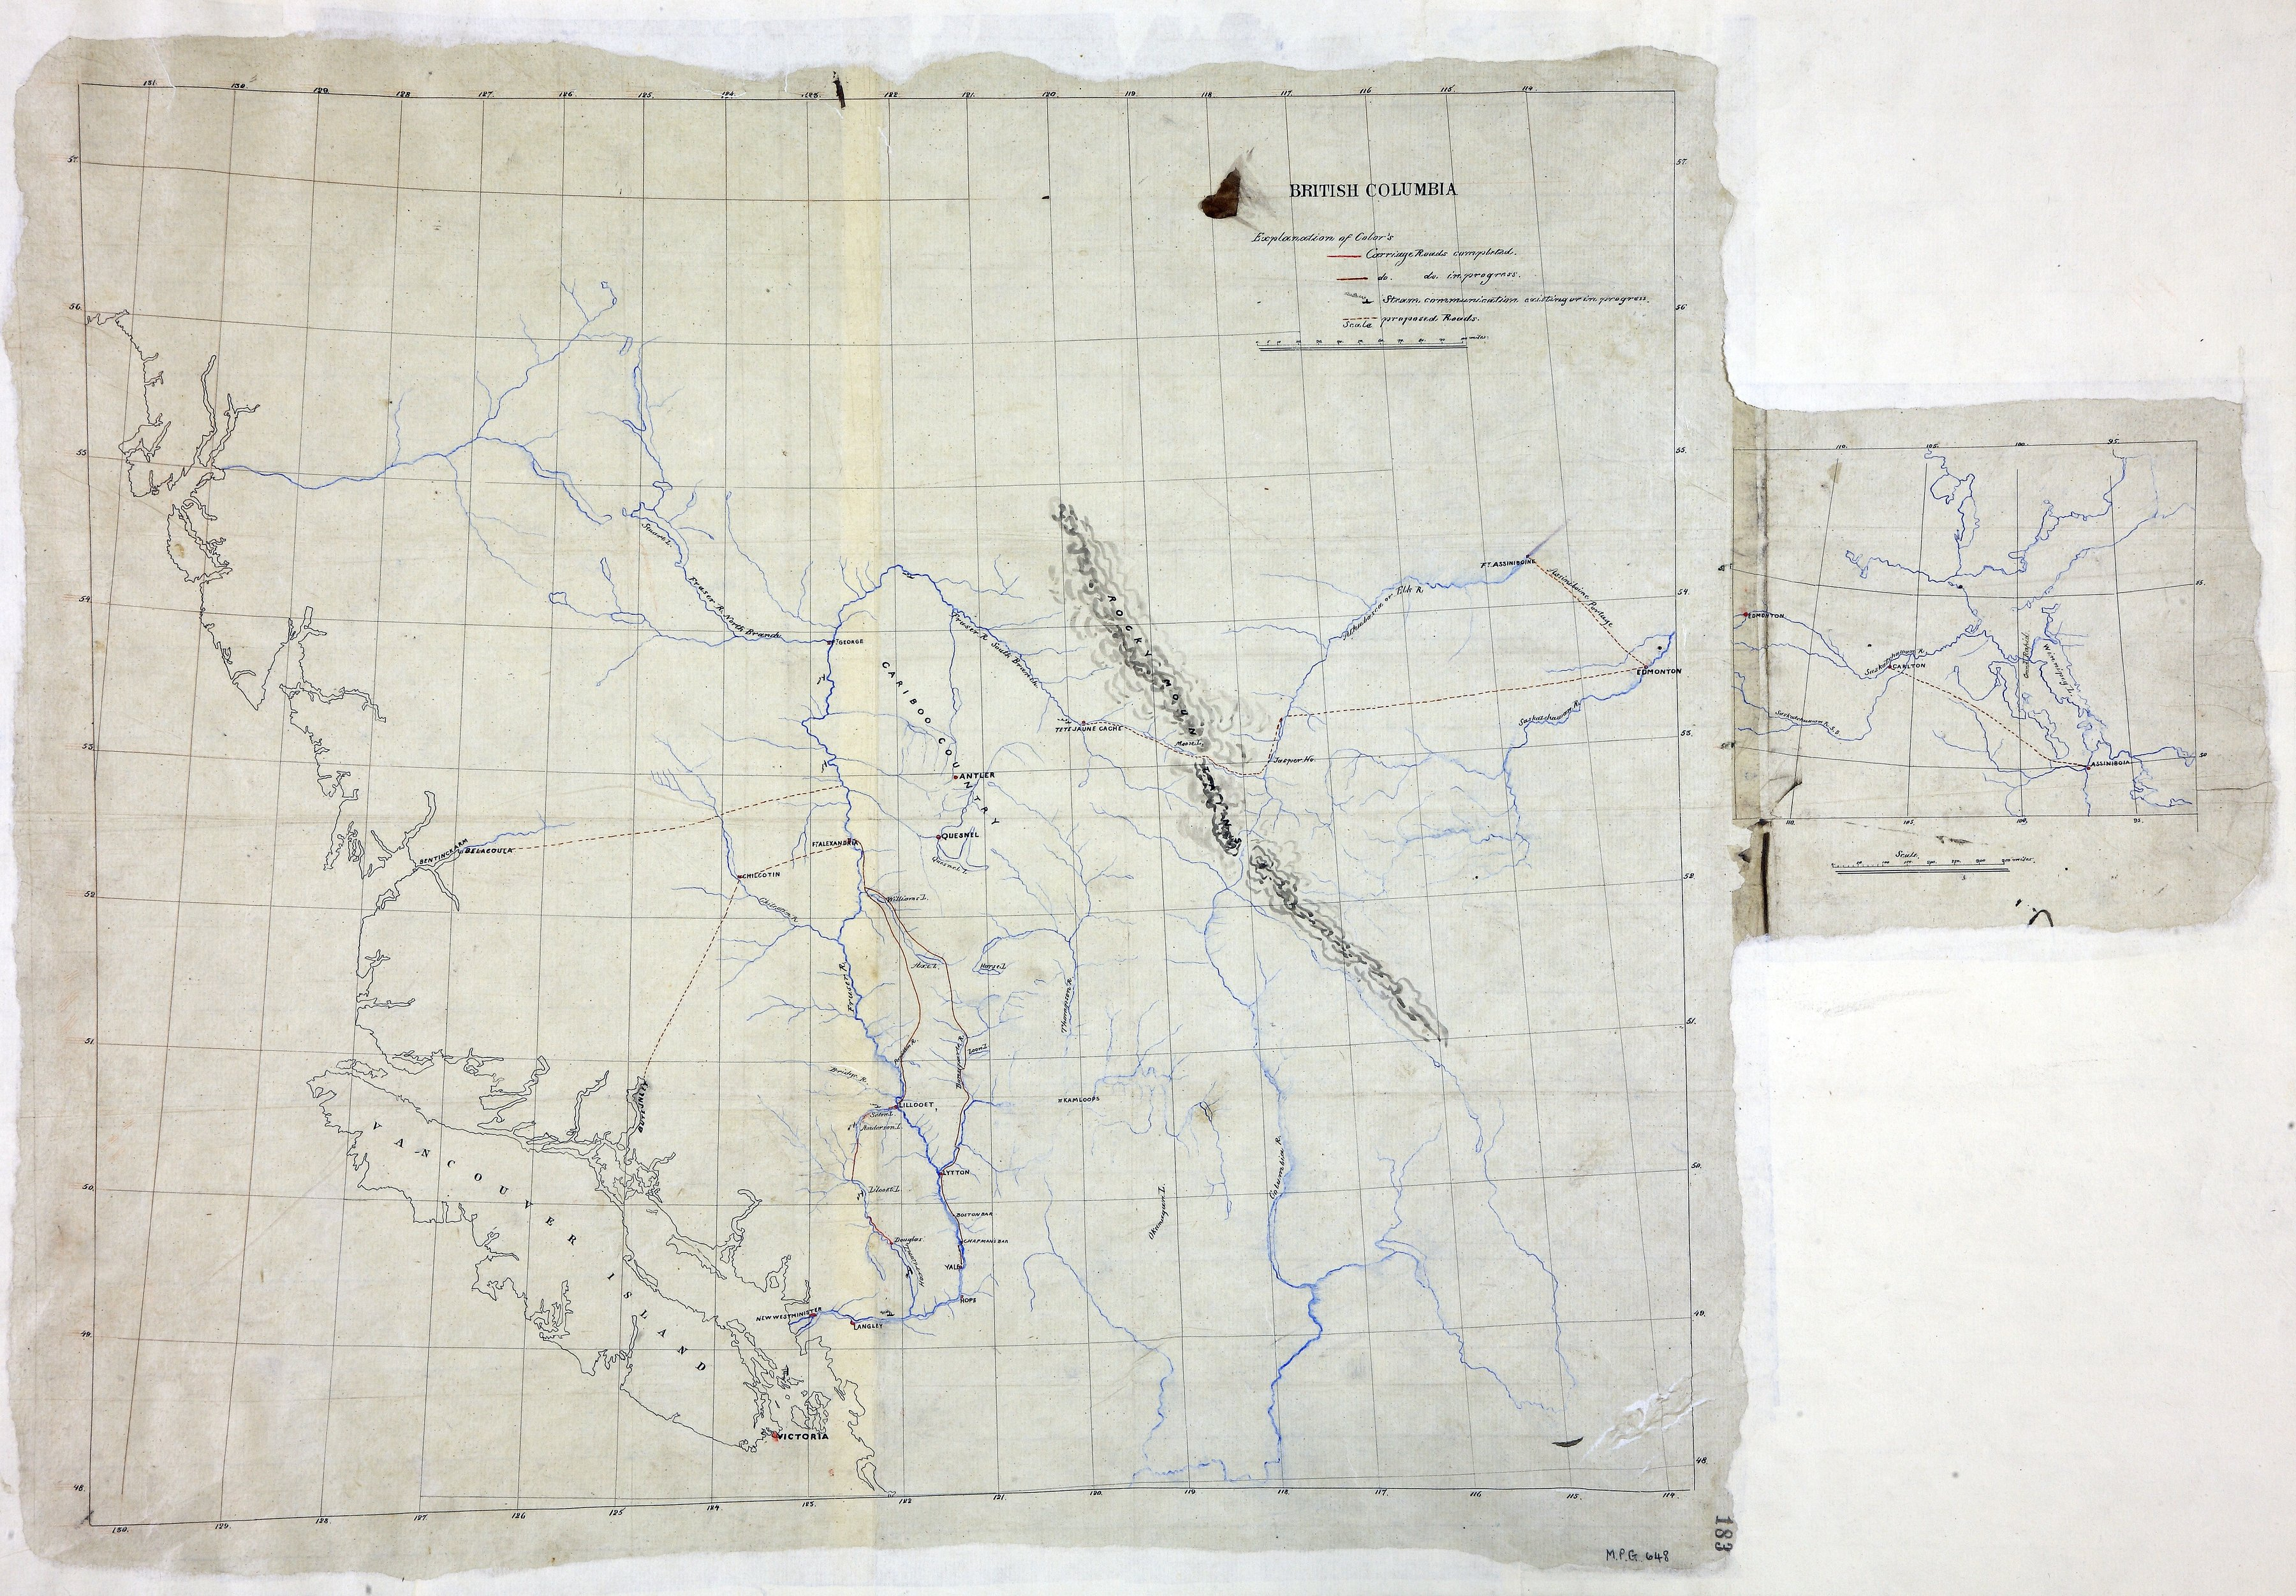 British Columbia, showing carriage roads completed, in progress, and proposed.